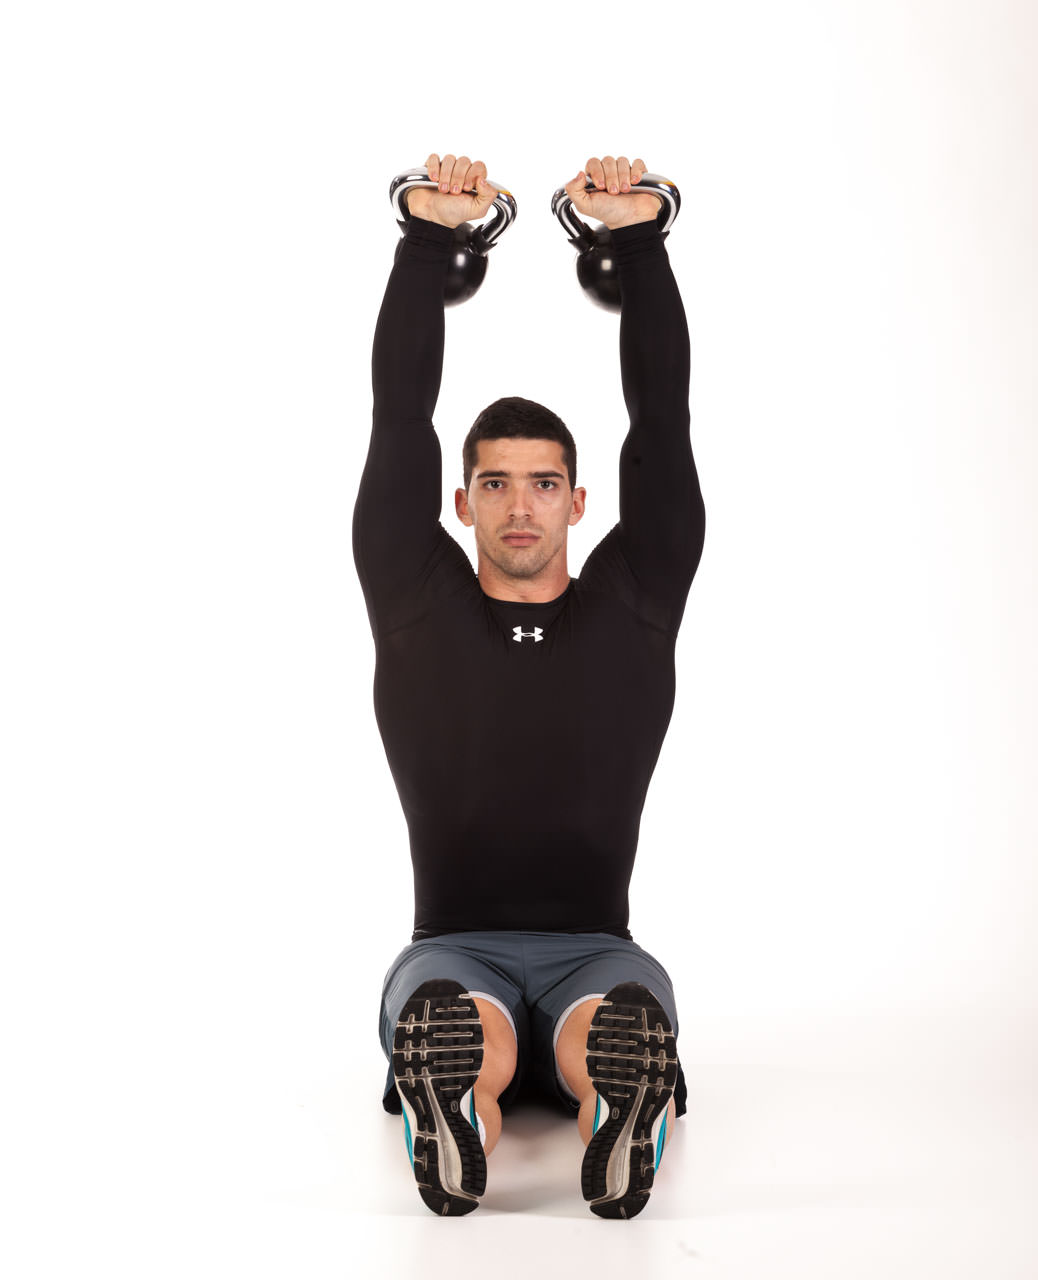 Kettlebell Seated Press frame #2